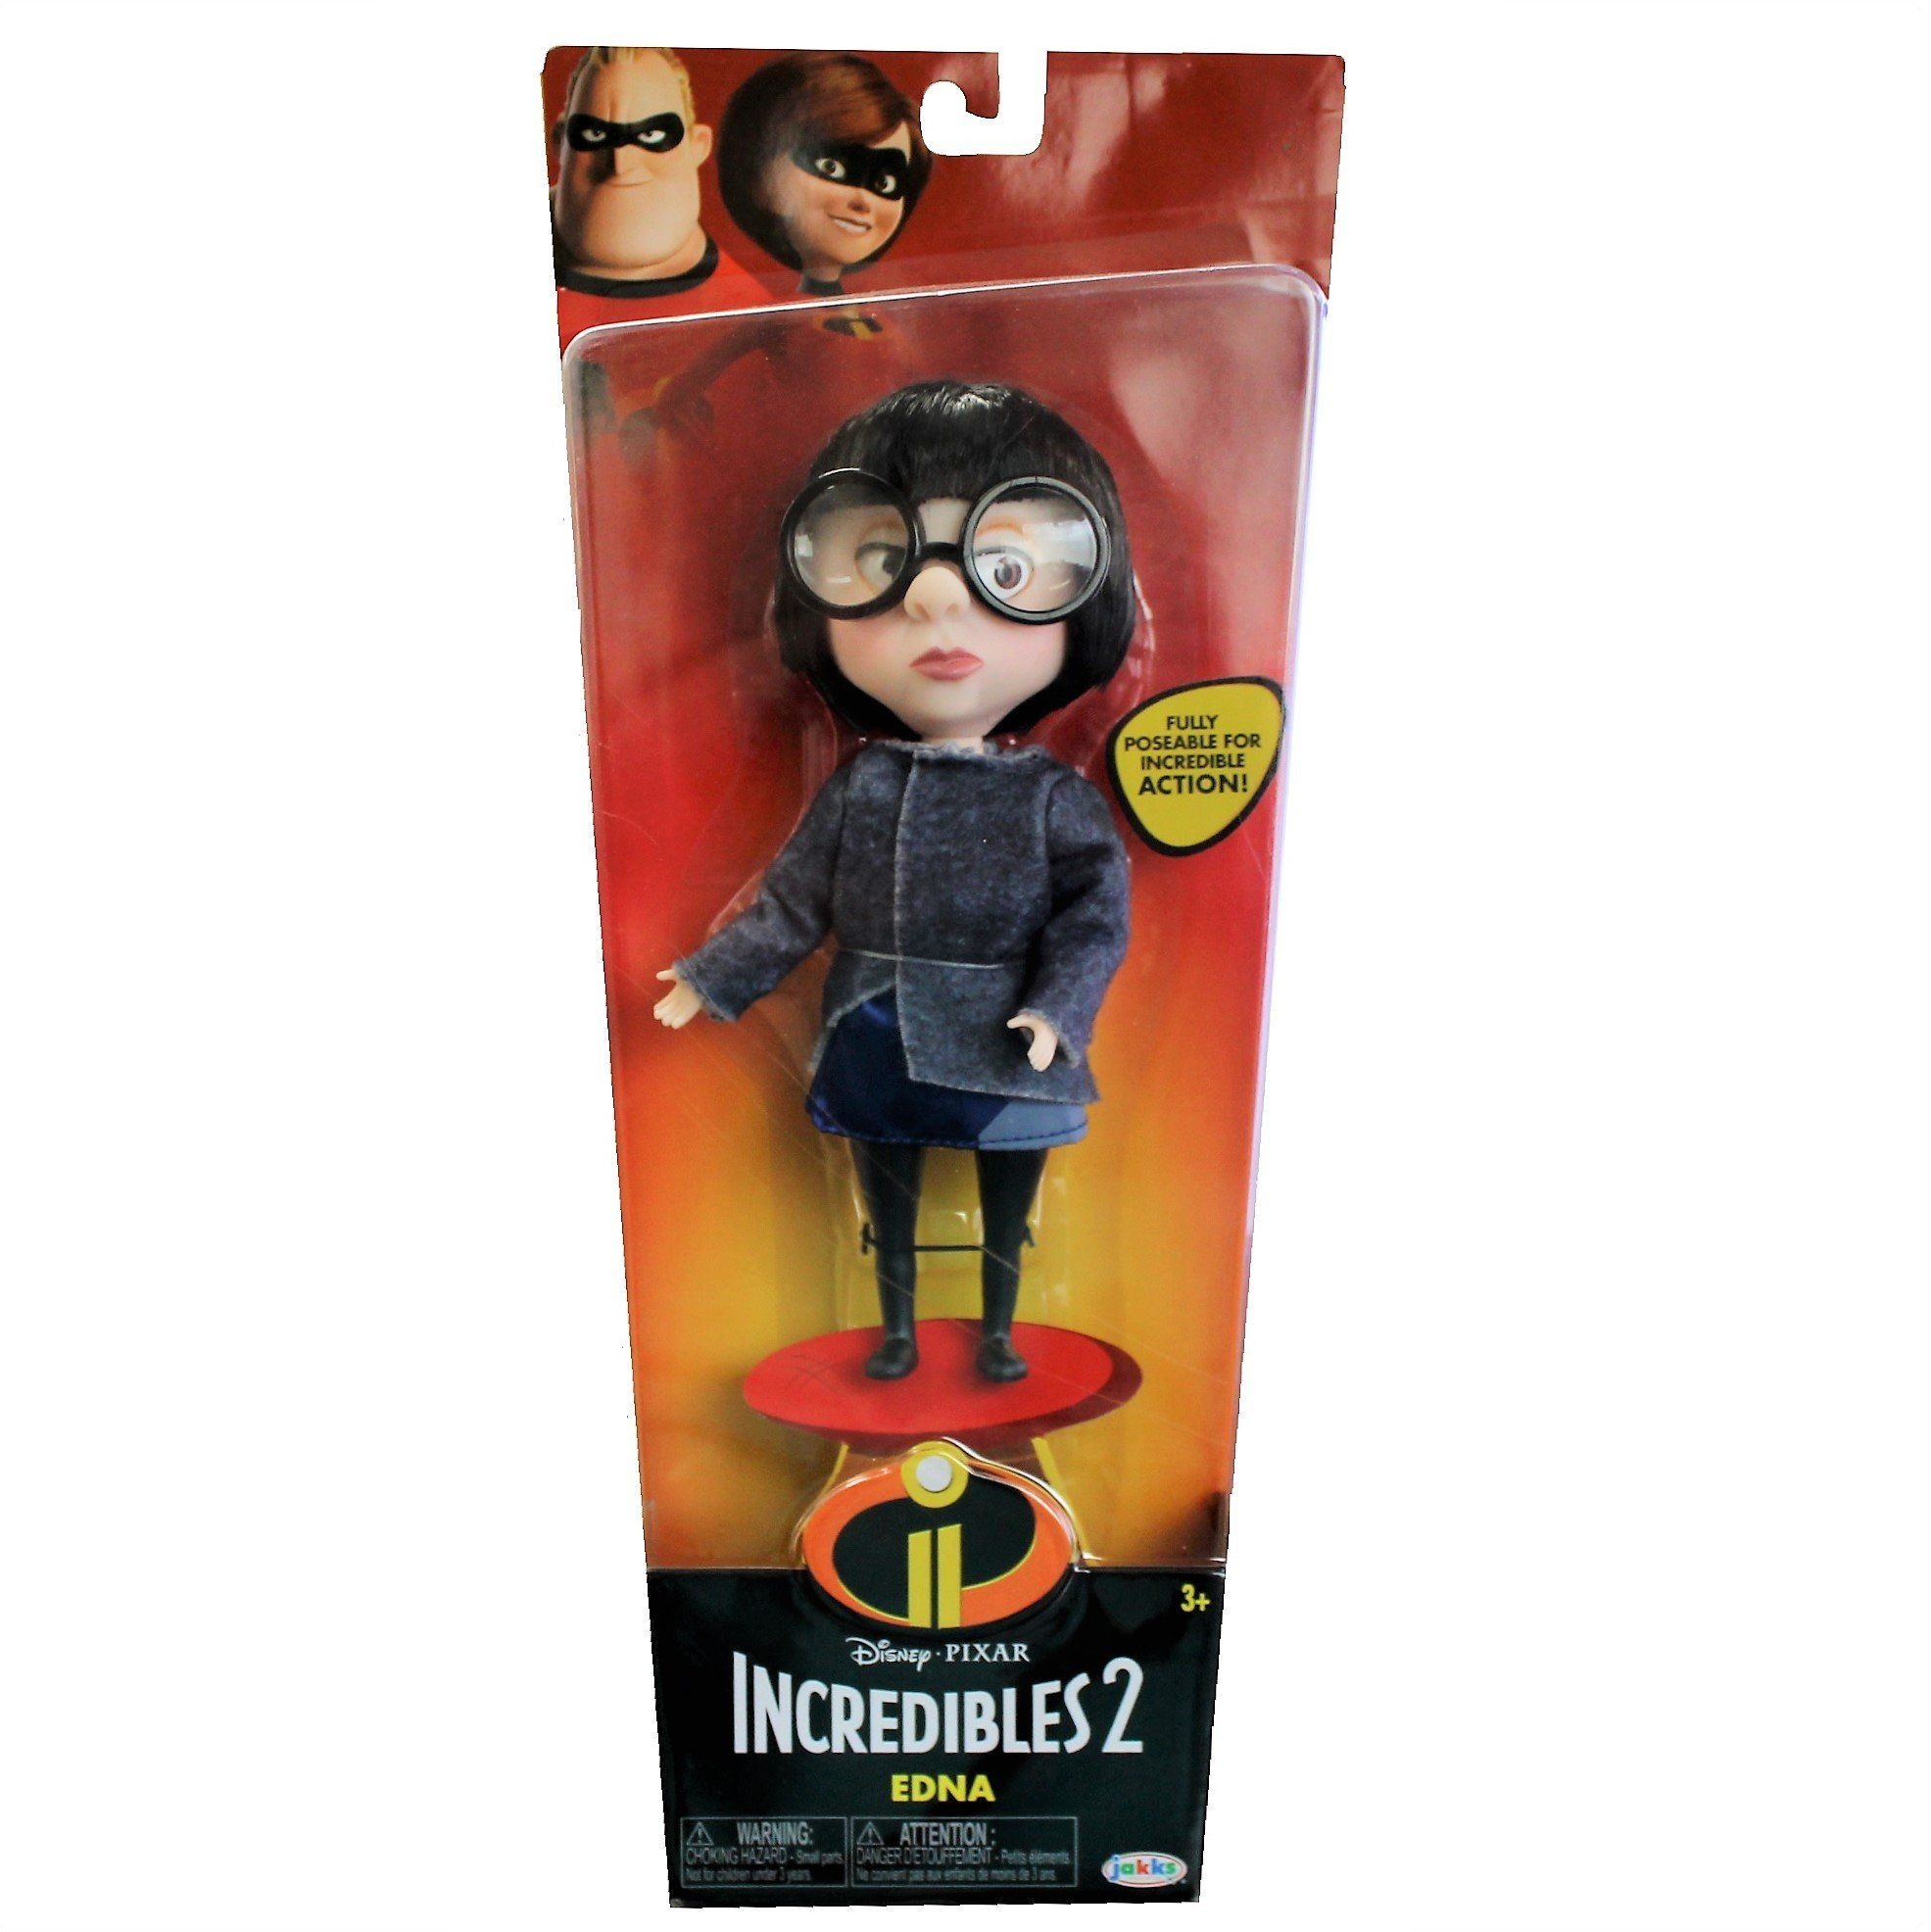 Incredibles 2 Edna Doll